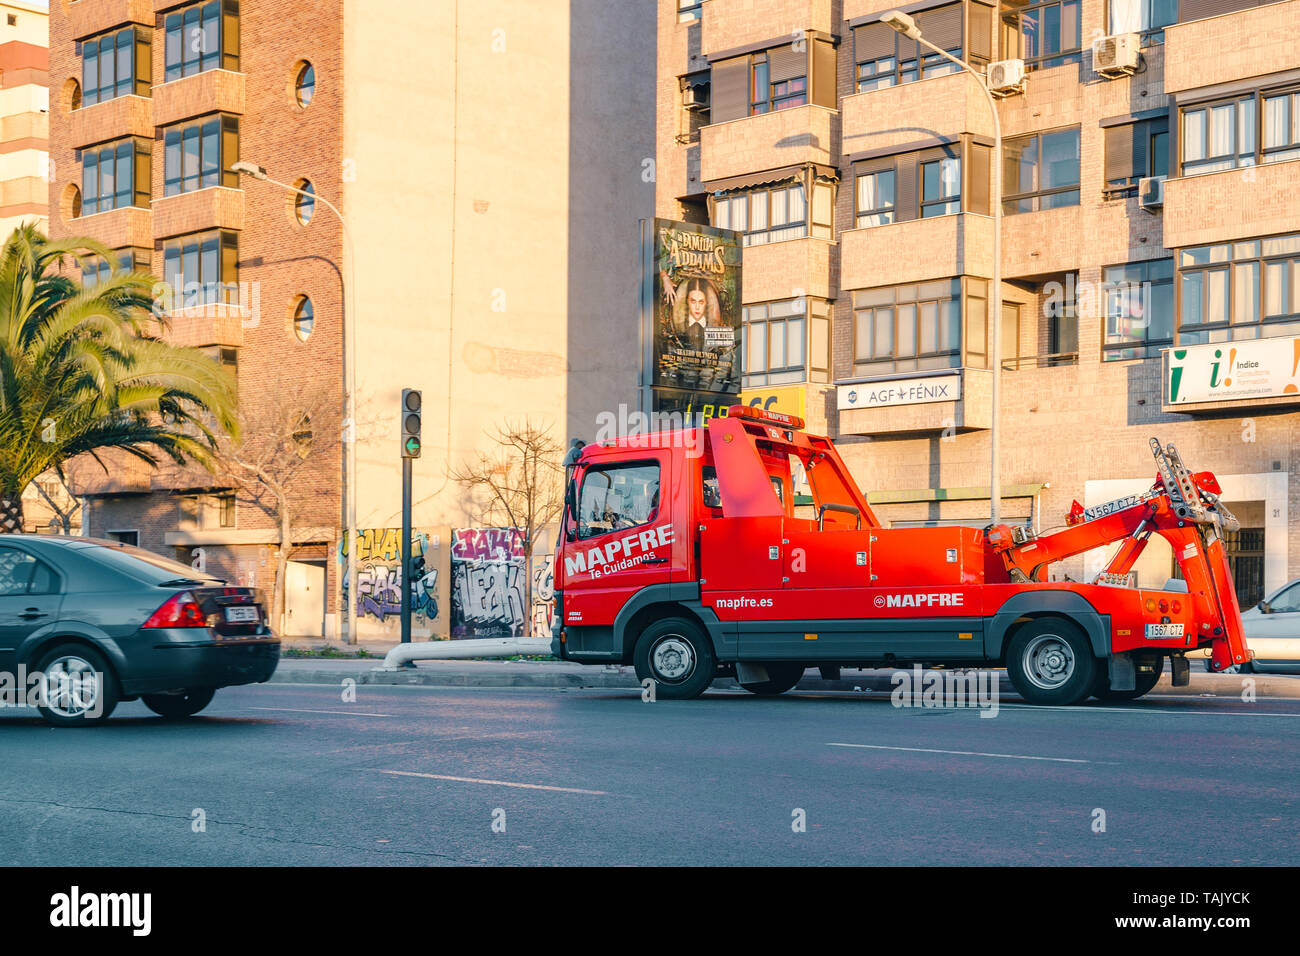 Cuadro Medico Mapfre Barcelona Mapfre Insurance Stock Photos Mapfre Insurance Stock Images Alamy